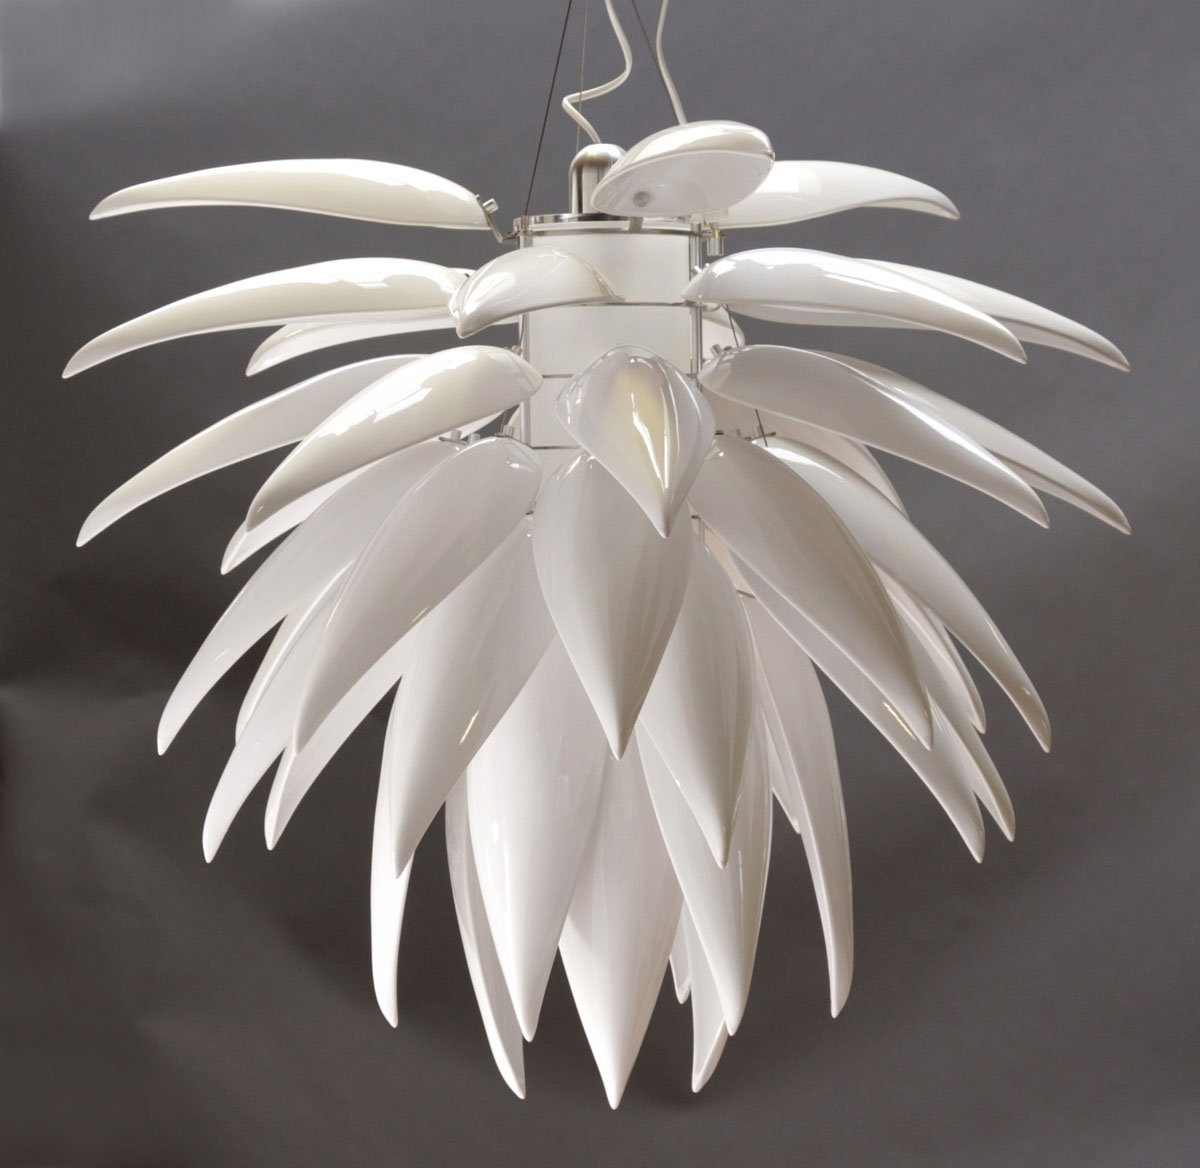 Trendy Contemporary Lighting Chandeliers White : Antique Contemporary Regarding White Contemporary Chandelier (View 12 of 15)